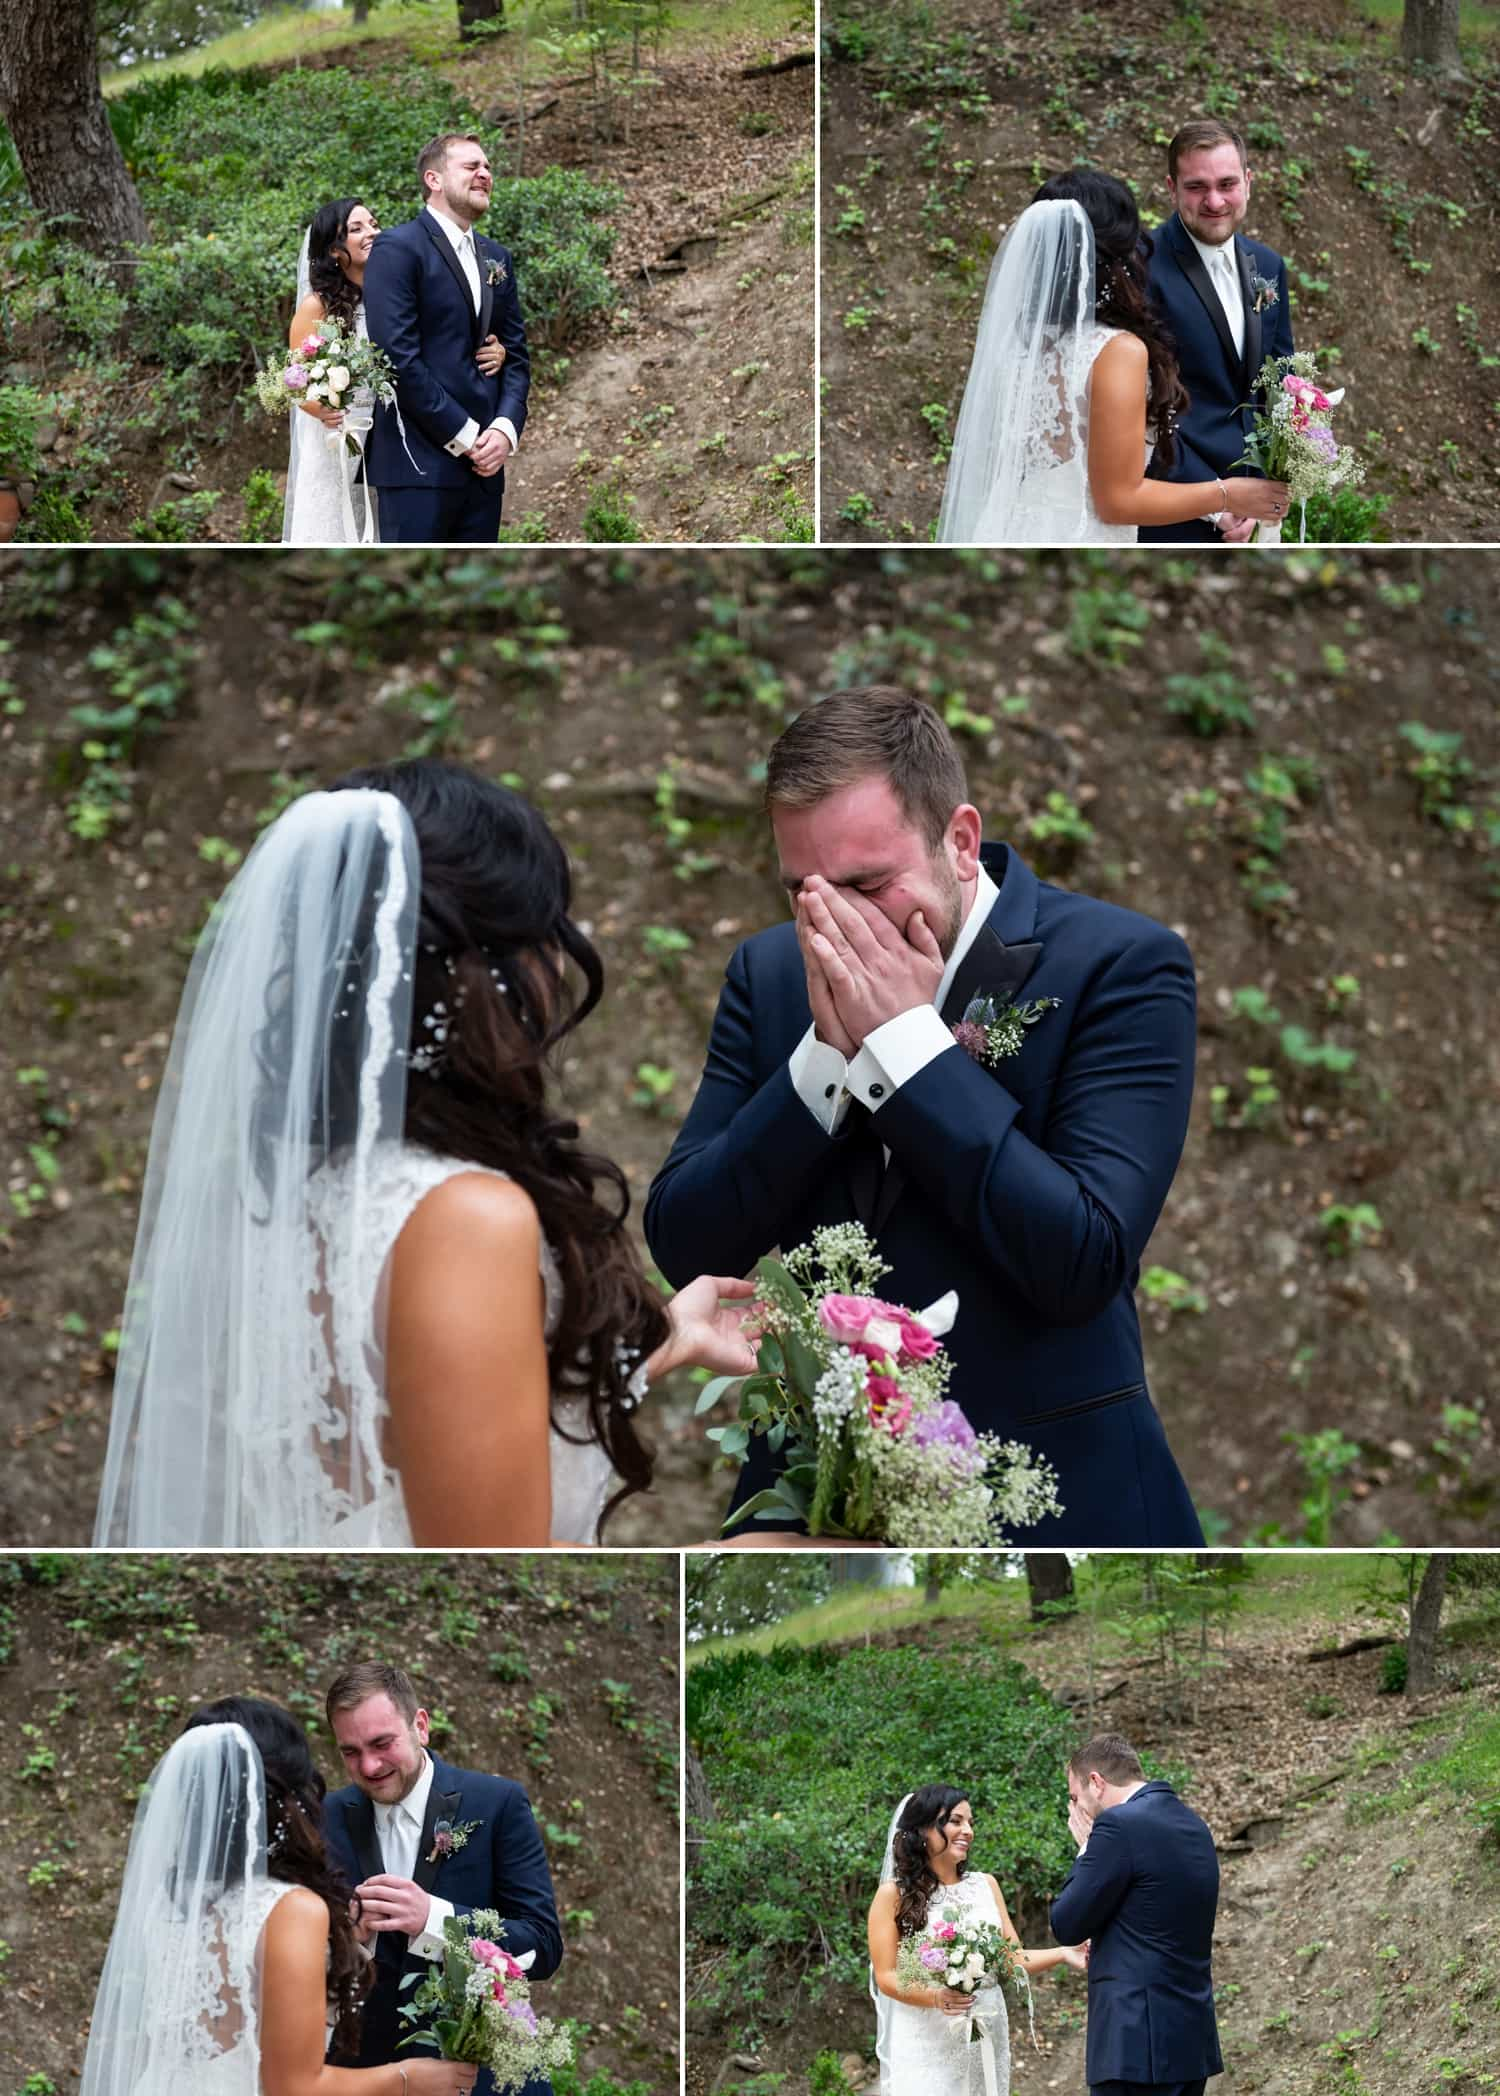 Emotional first look between Bride and Groom at Circle Oak Ranch in Temecula.